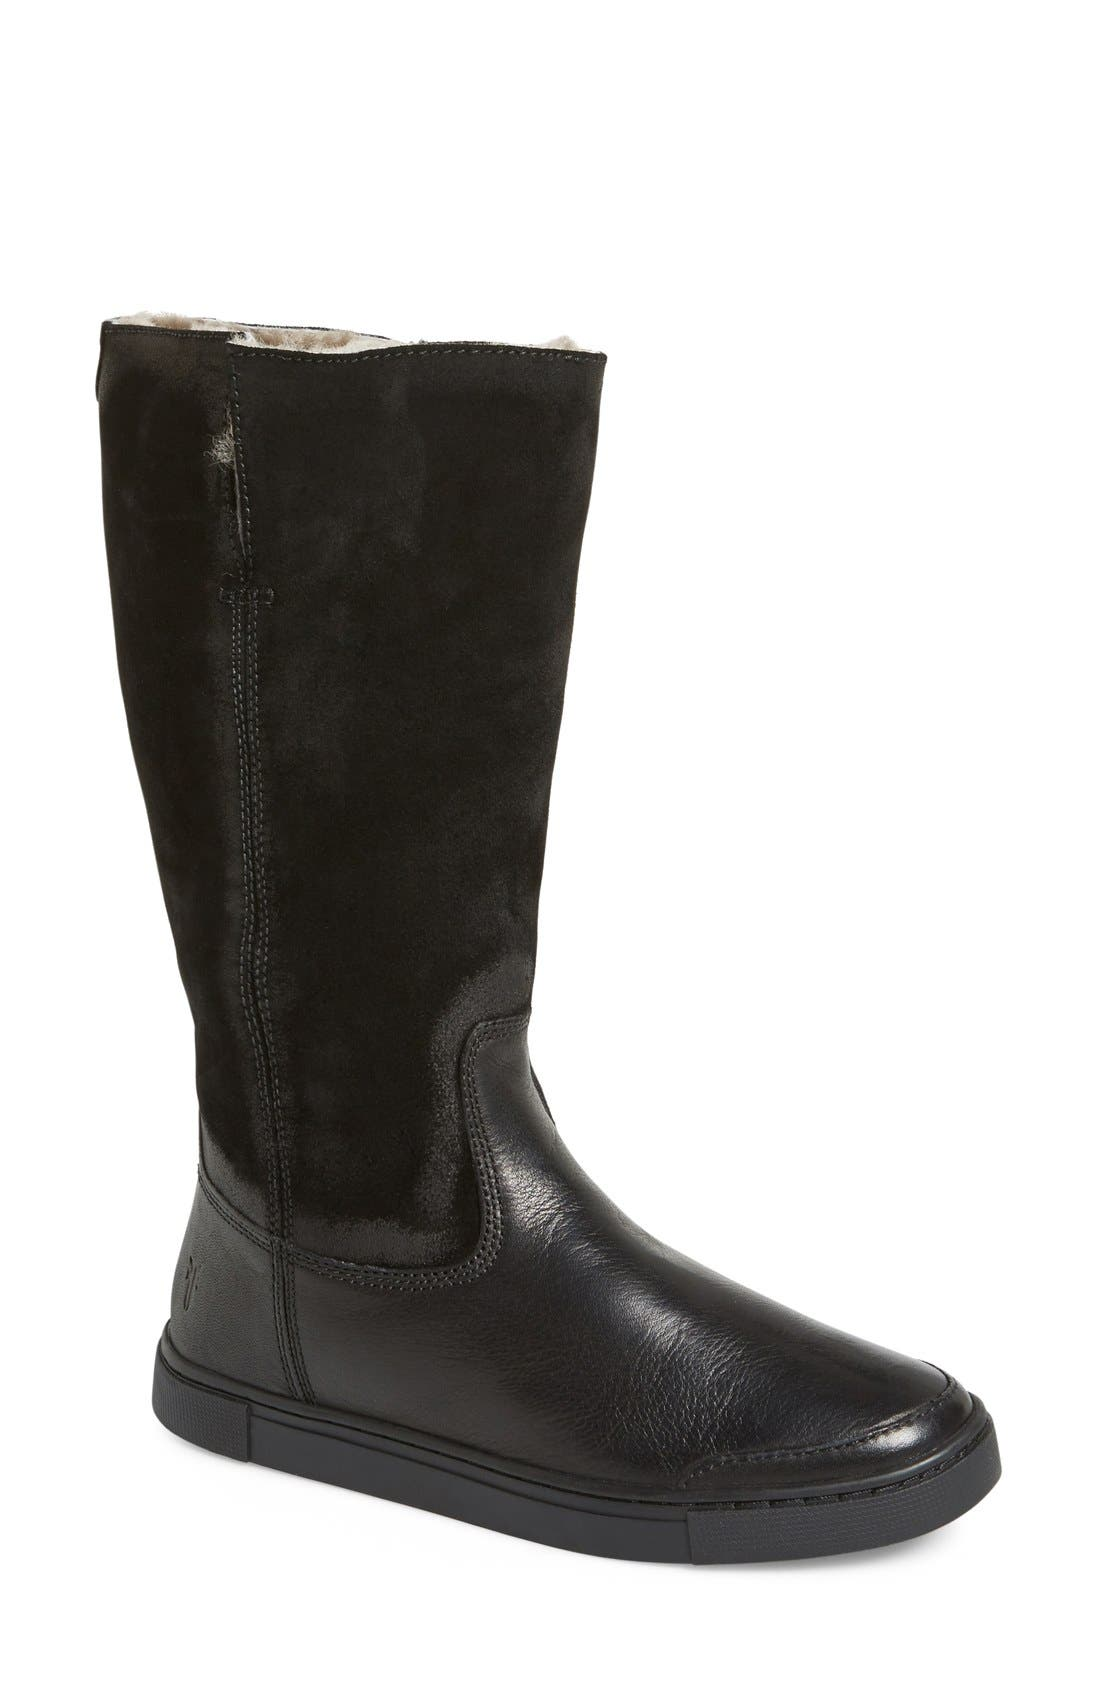 'Gemma' Tall Genuine Shearling Lined Boot,                             Main thumbnail 1, color,                             001